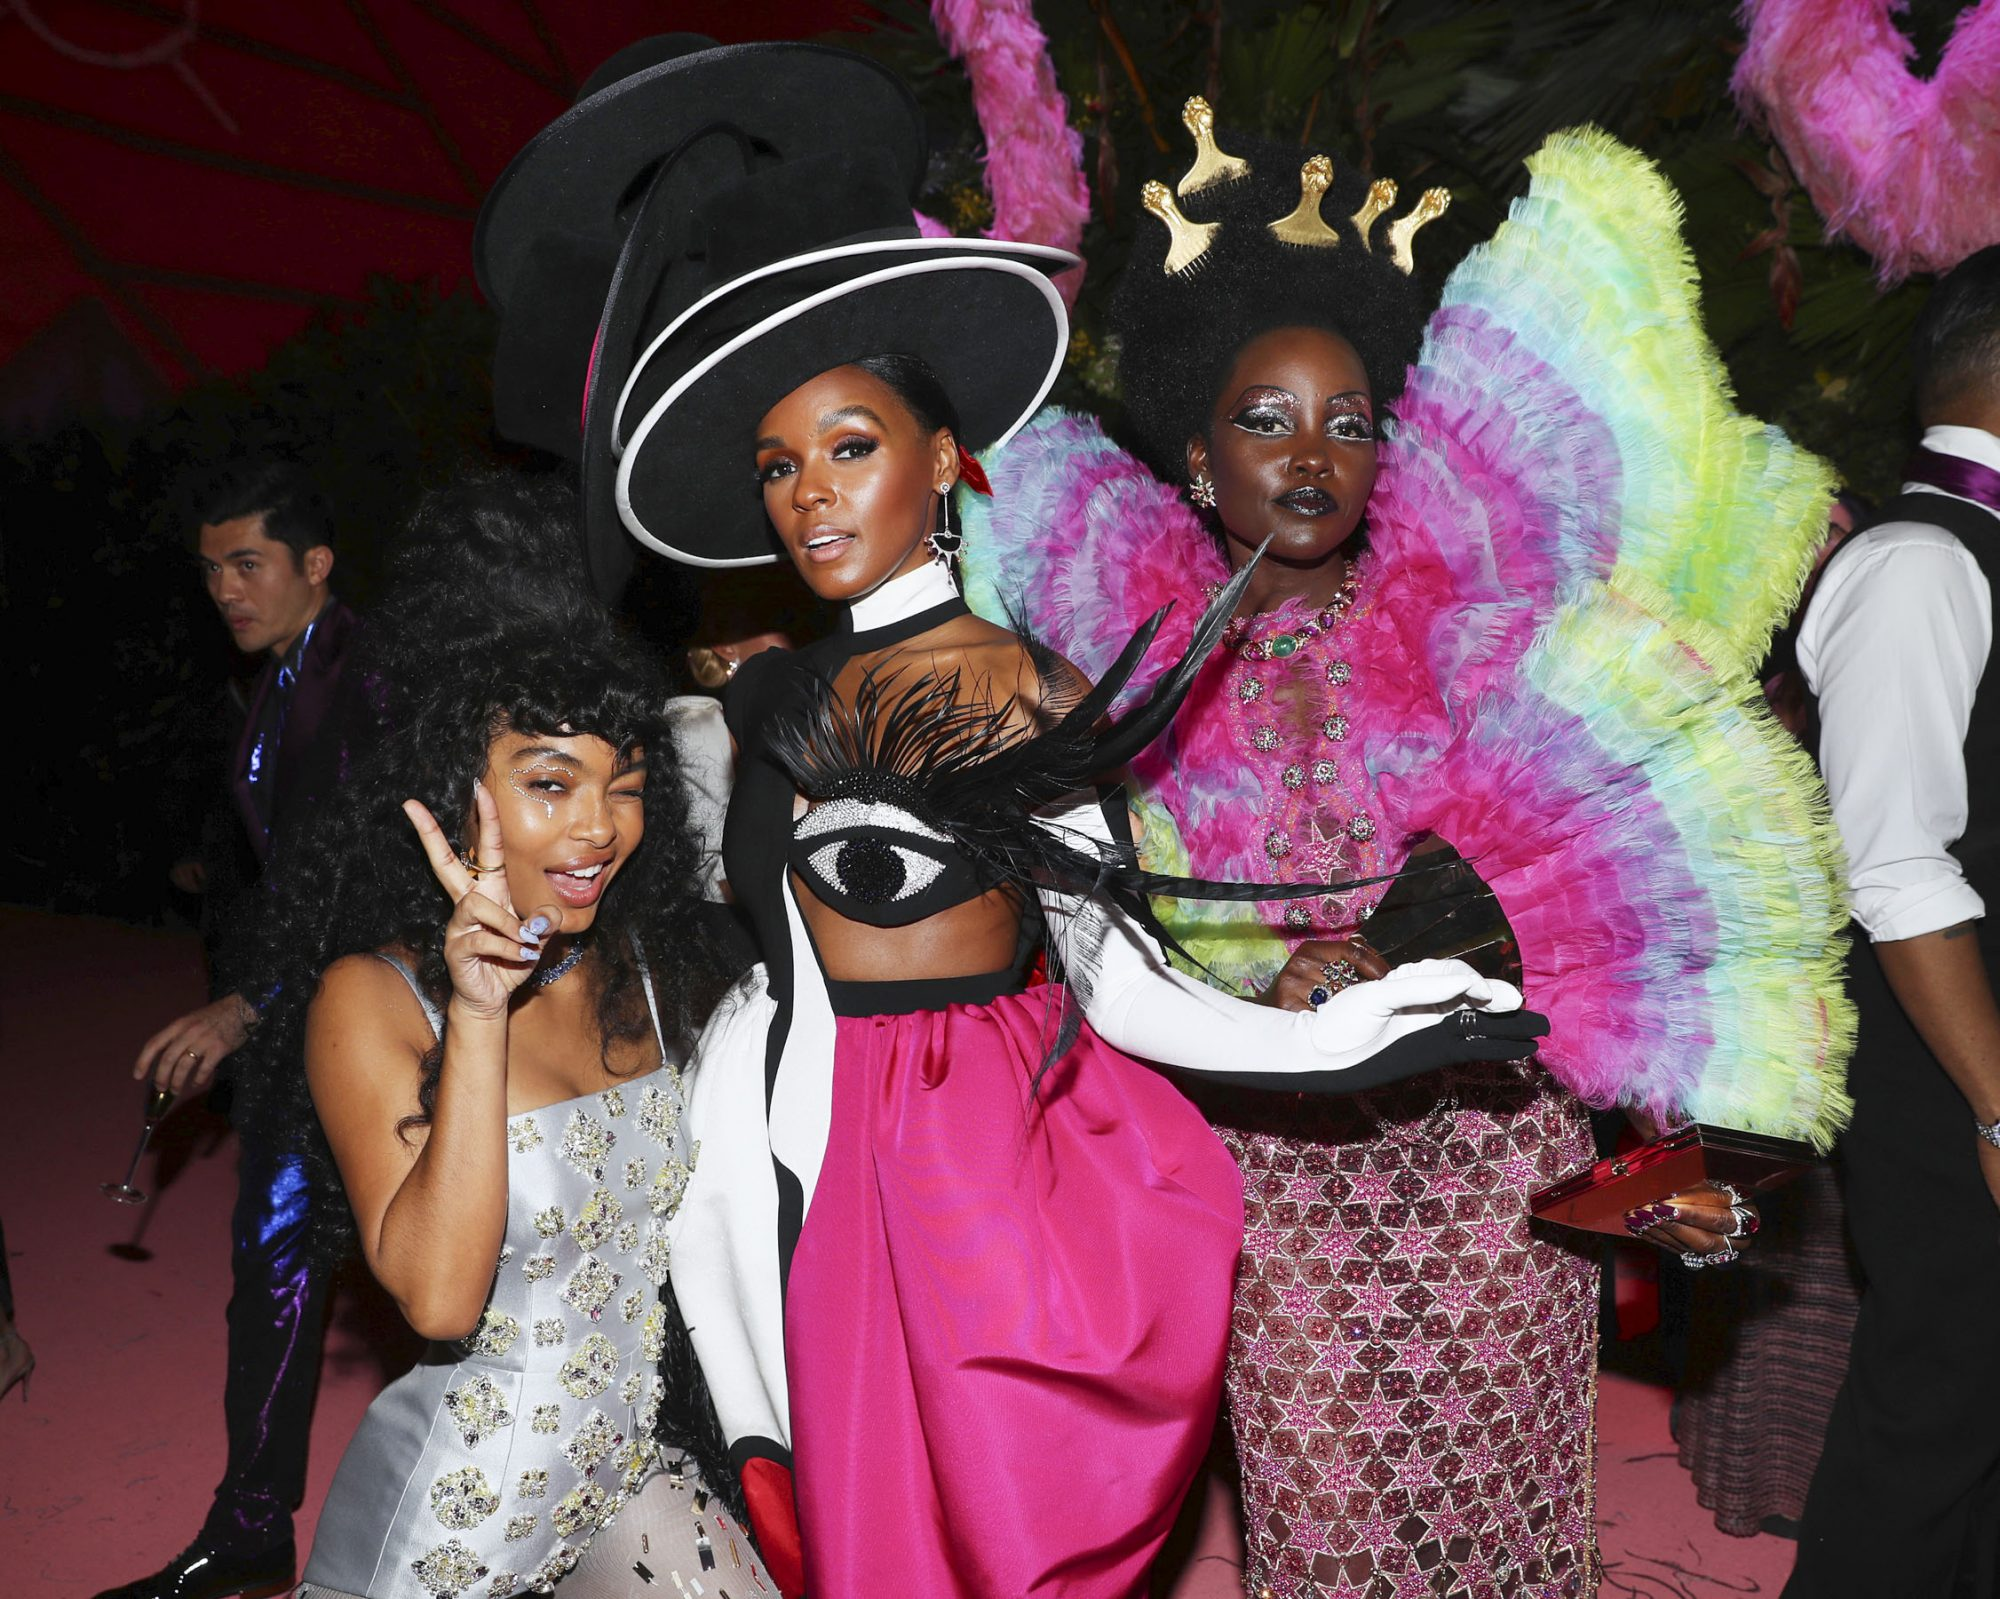 NEW YORK, NEW YORK - MAY 06: (L-R) Yara Shahidi, Janelle Monae, and Lupita Nyong'o attend The 2019 Met Gala Celebrating Camp: Notes on Fashion at Metropolitan Museum of Art on May 06, 2019 in New York City. (Photo by Kevin Tachman/MG19/Getty Images for The Met Museum/Vogue)